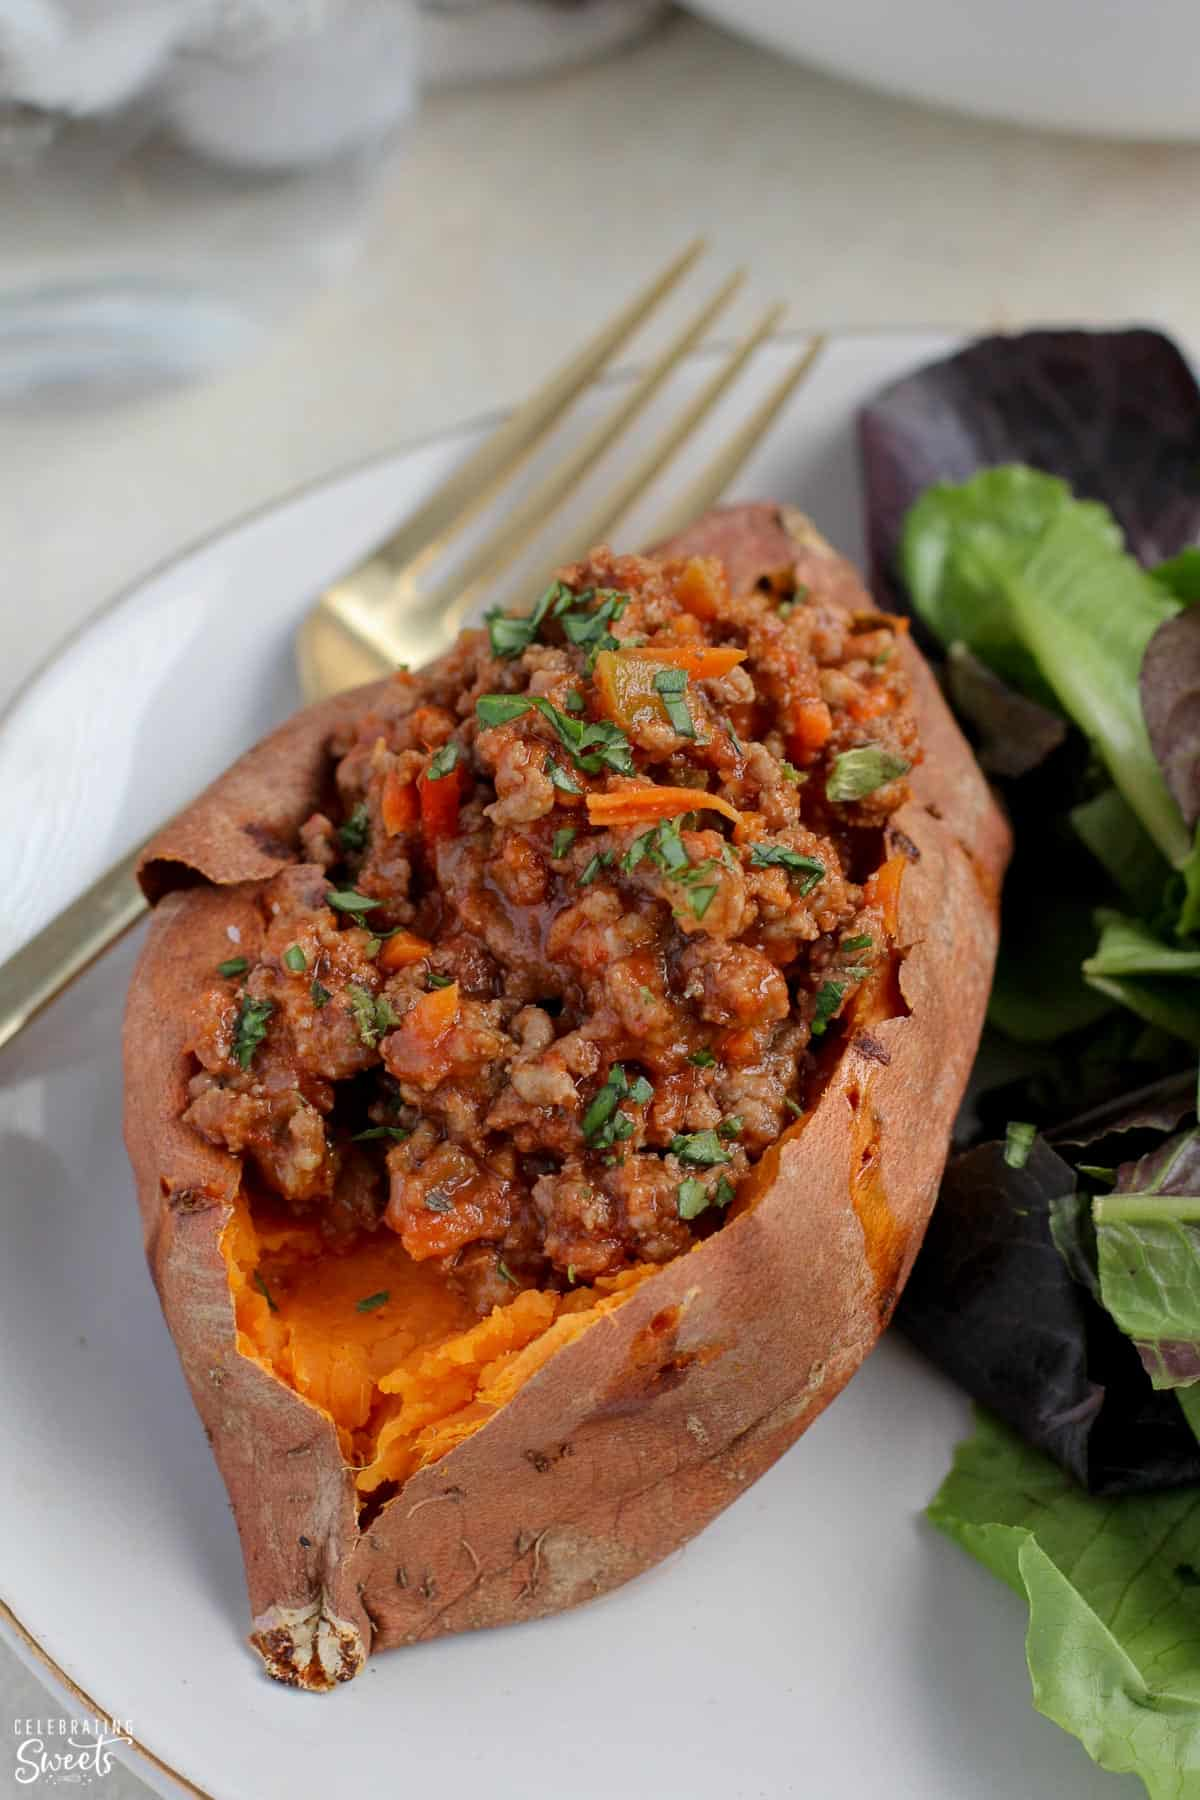 Baked sweet potato stuffed with sloppy joe meat